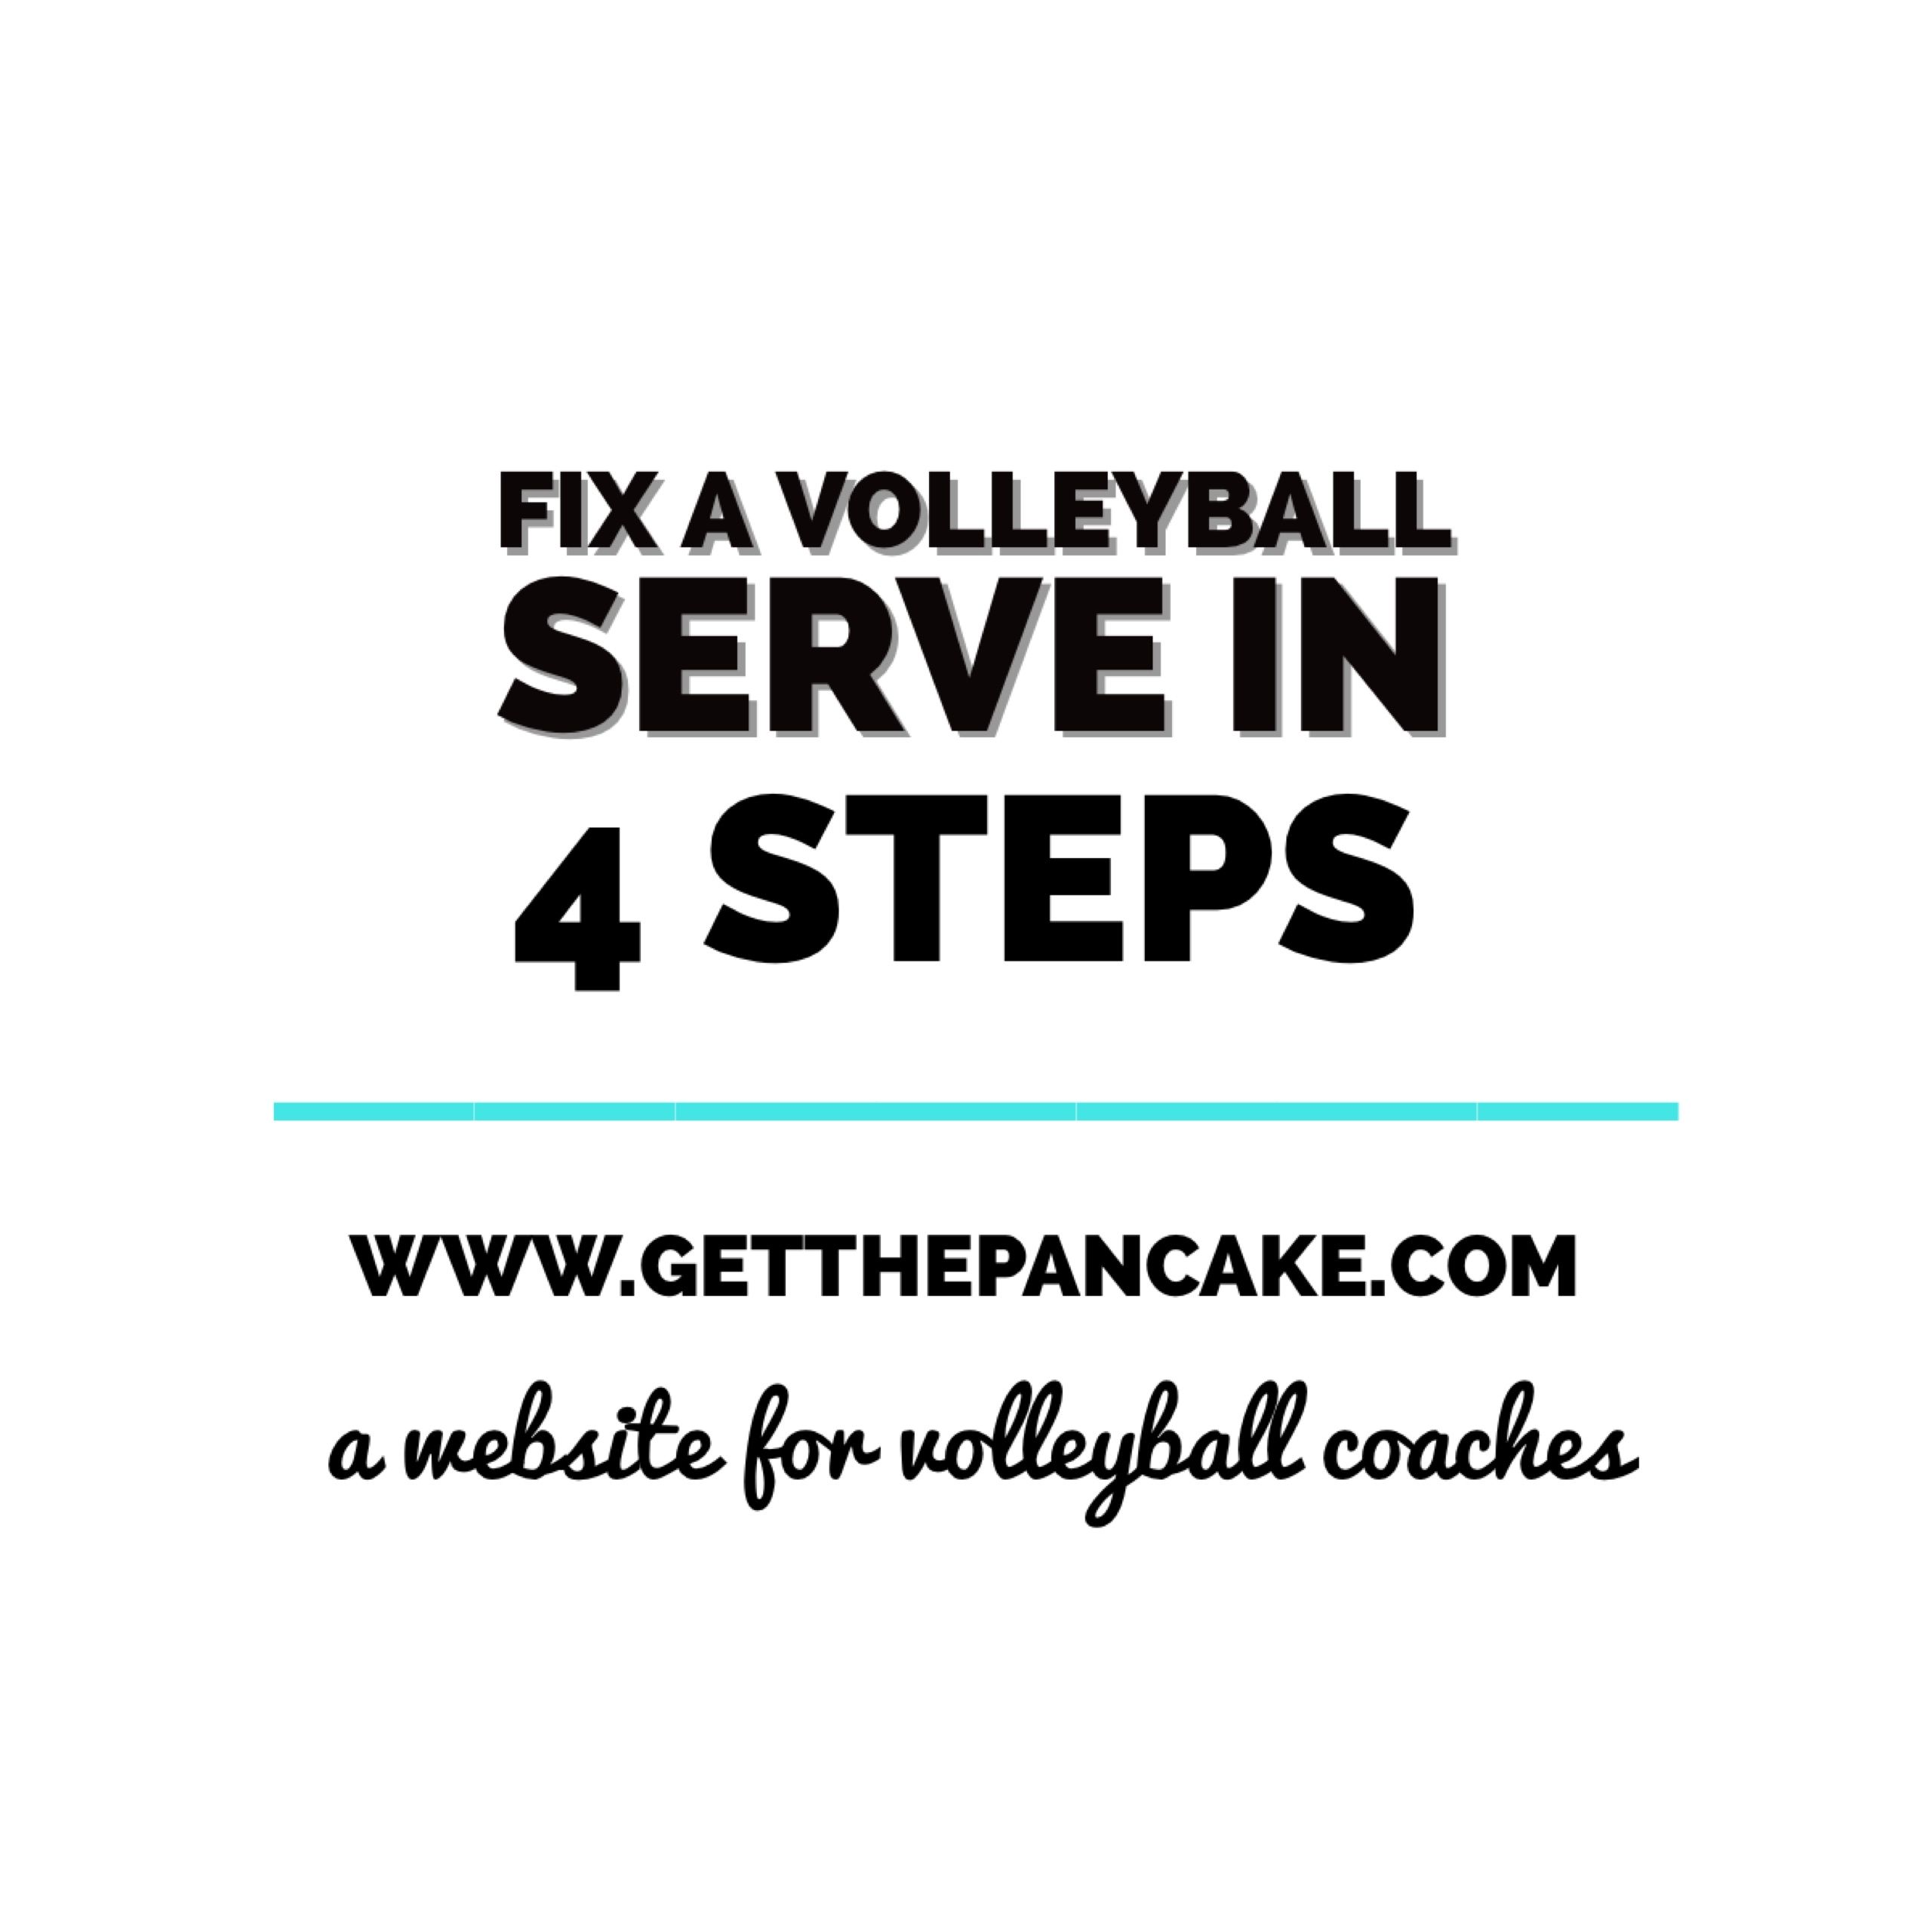 Fix A Volleyball Serve In 4 Steps Volleyball Serve Volleyball Workouts Coaching Volleyball